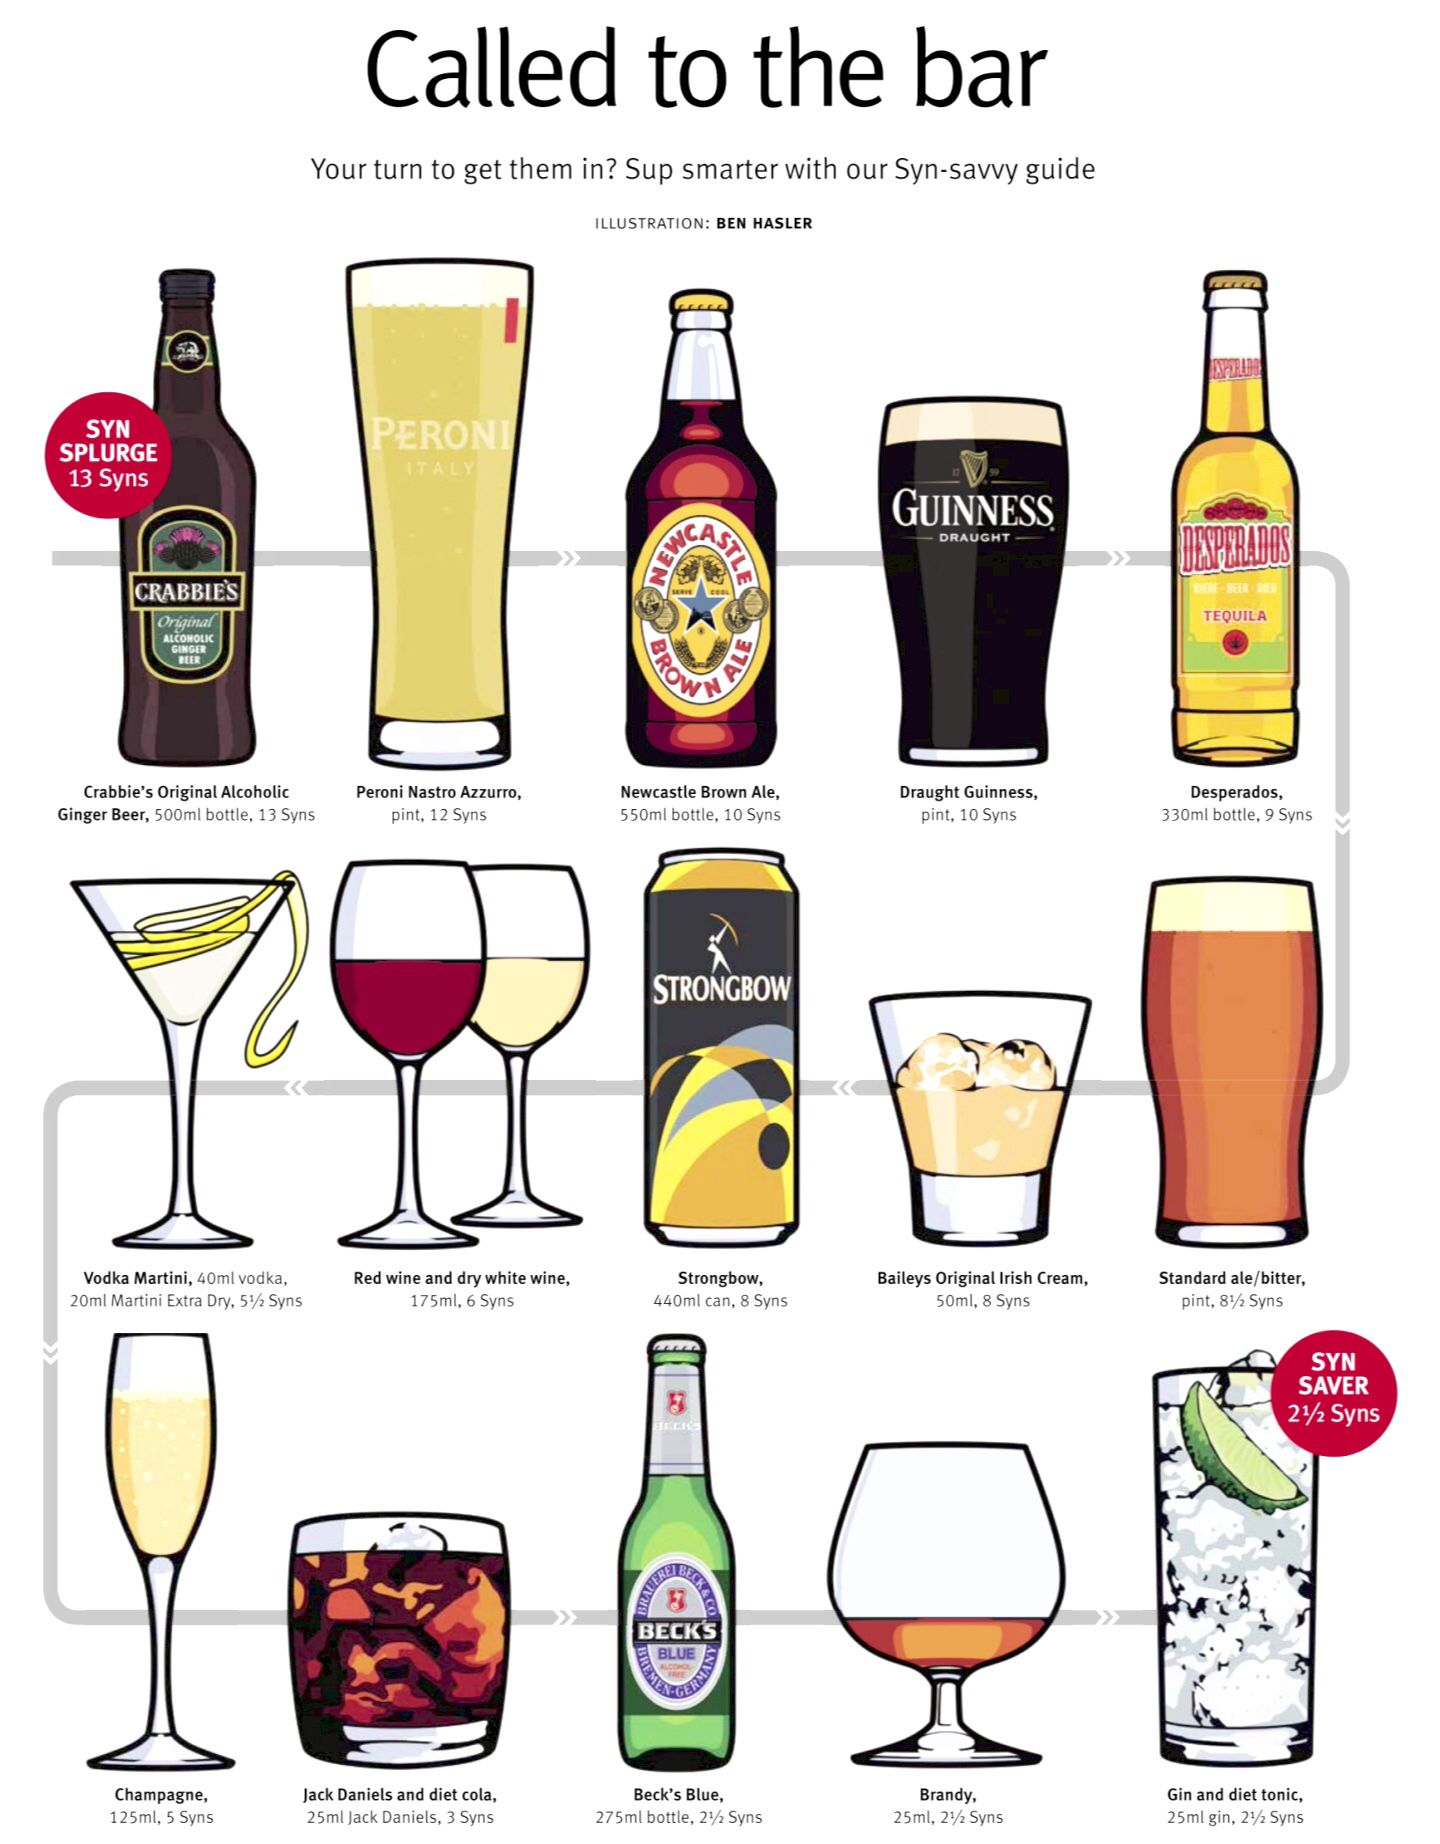 Slimming world alcohol syn value slimming world syn Slimming world slimming world